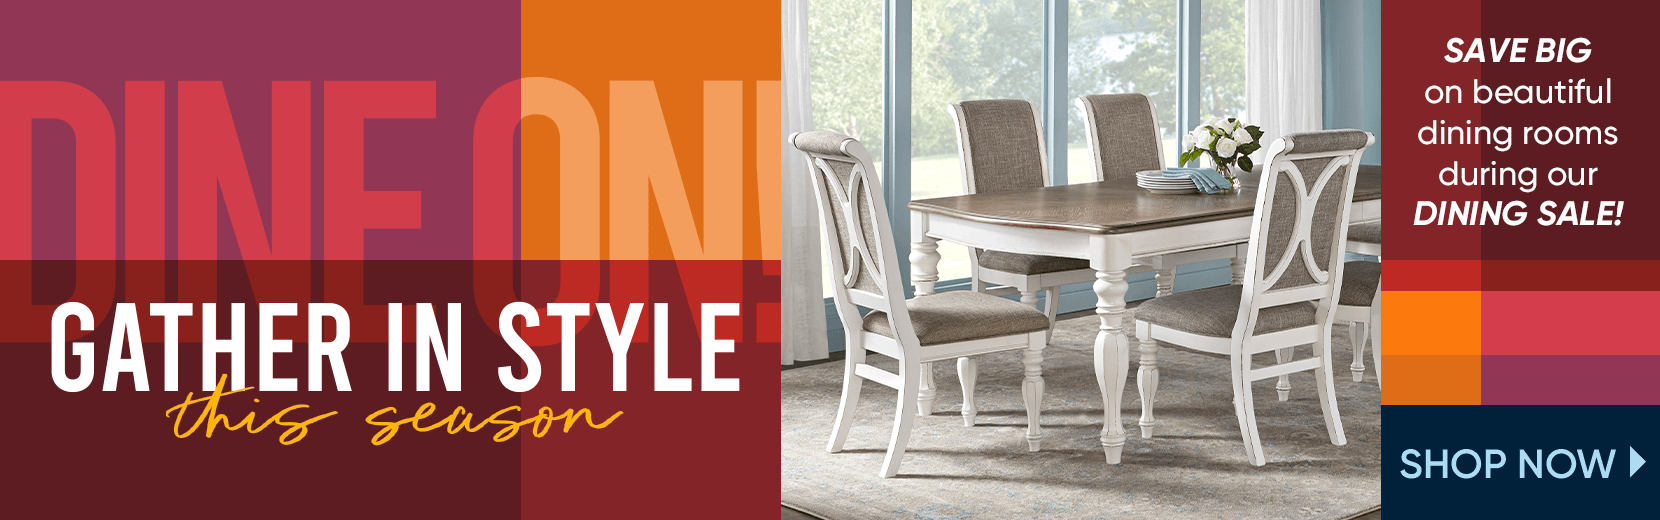 dine on. gather in style this season. save big on beautiful dining rooms during our dining sale. shop now